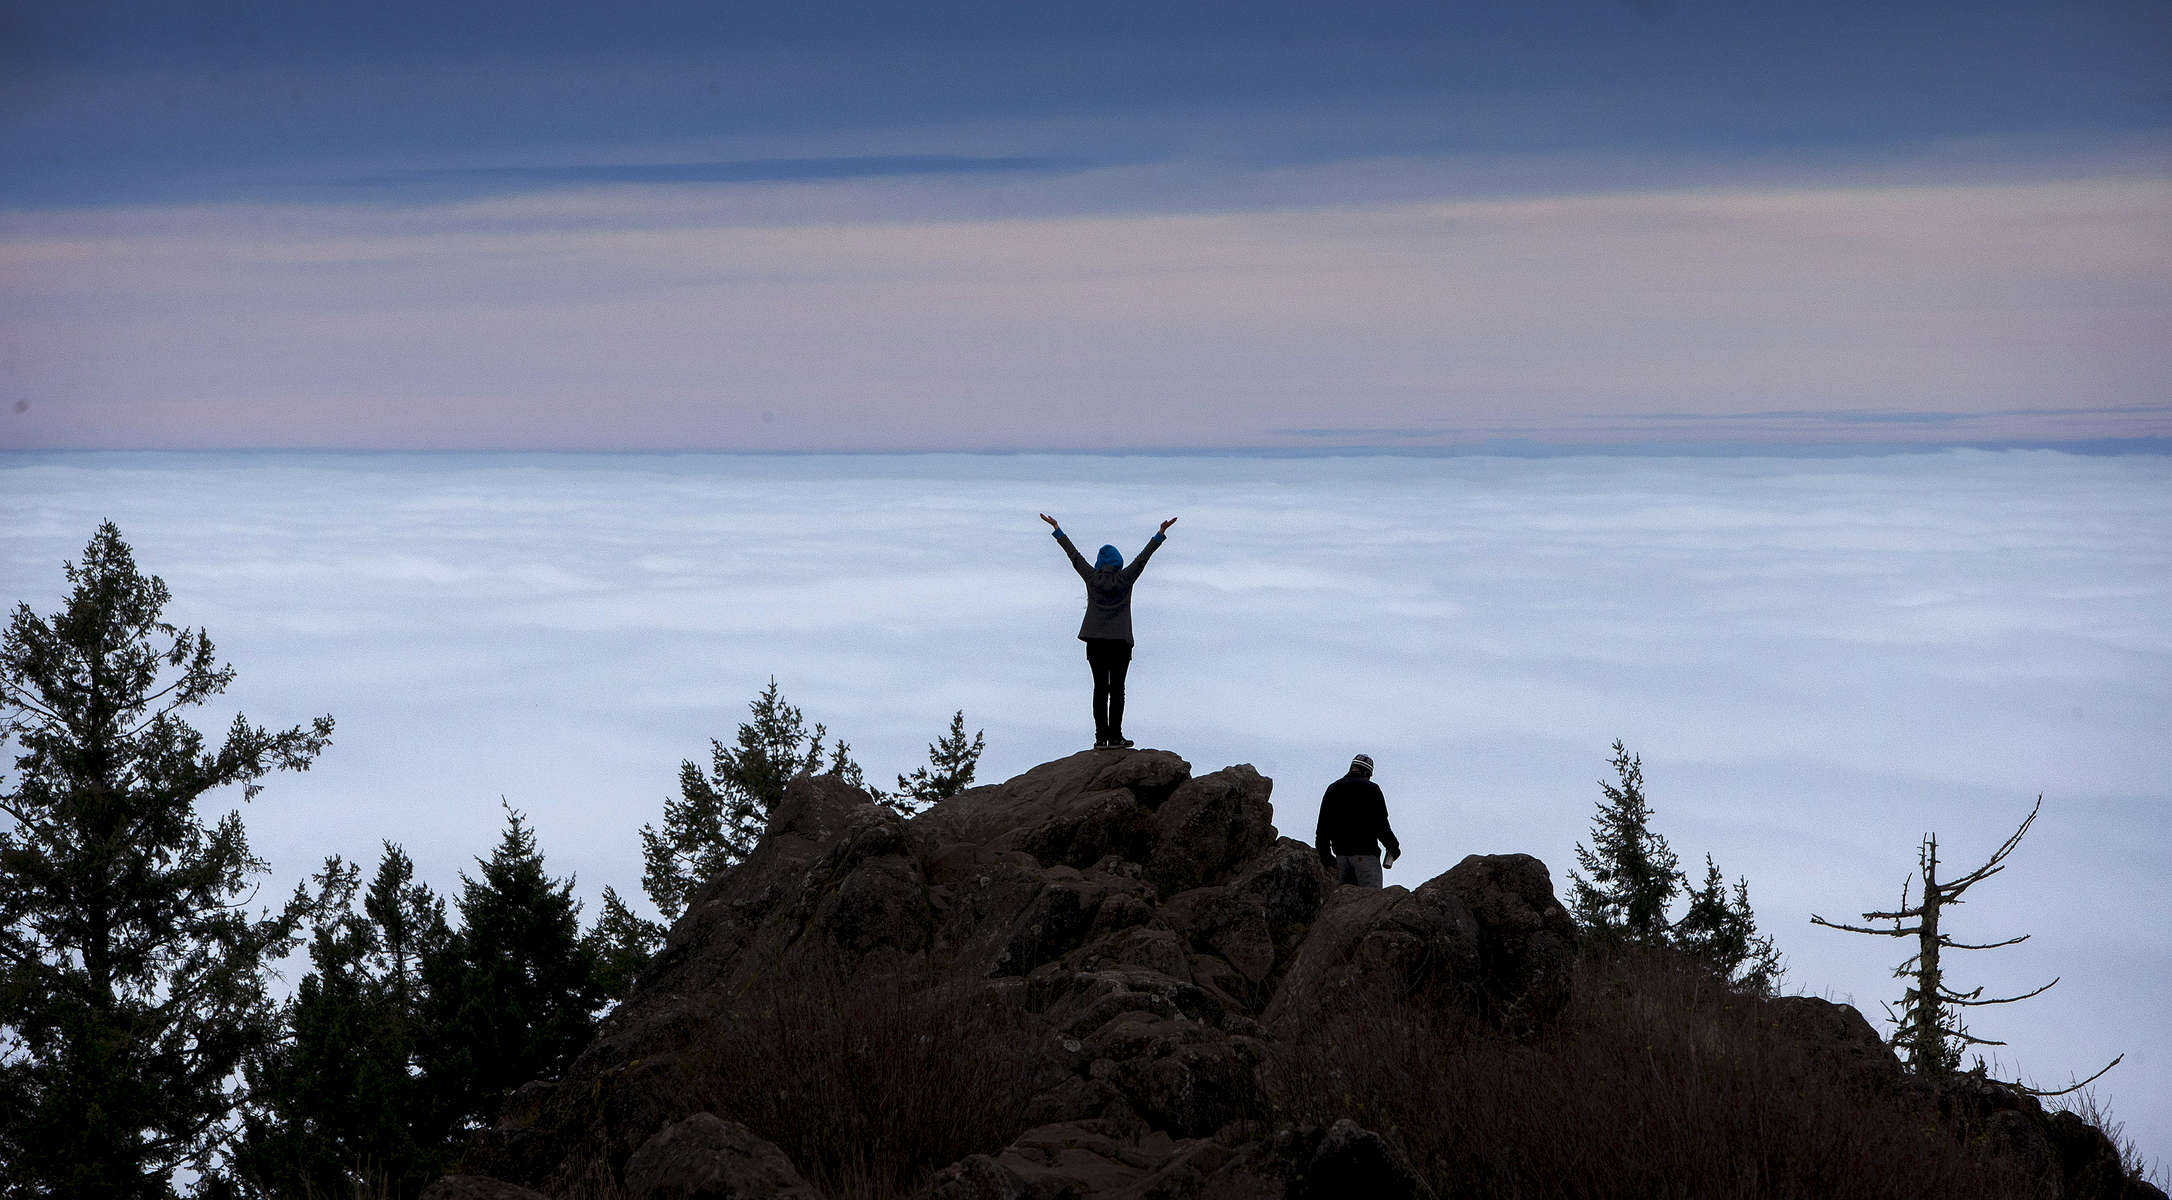 It might have been foggy in the Willamette Valley, but Cerridwen Martin was able to revel in a view of the top of the clouds from the 2,055 above sea level summit of Spencer Butte in Eugene, Ore., on Tuesday, December 16, 2014. Martin was joined by Joe Martinson, right, for the 1.1 mile trek. (Andy Nelson/The Register-Guard)